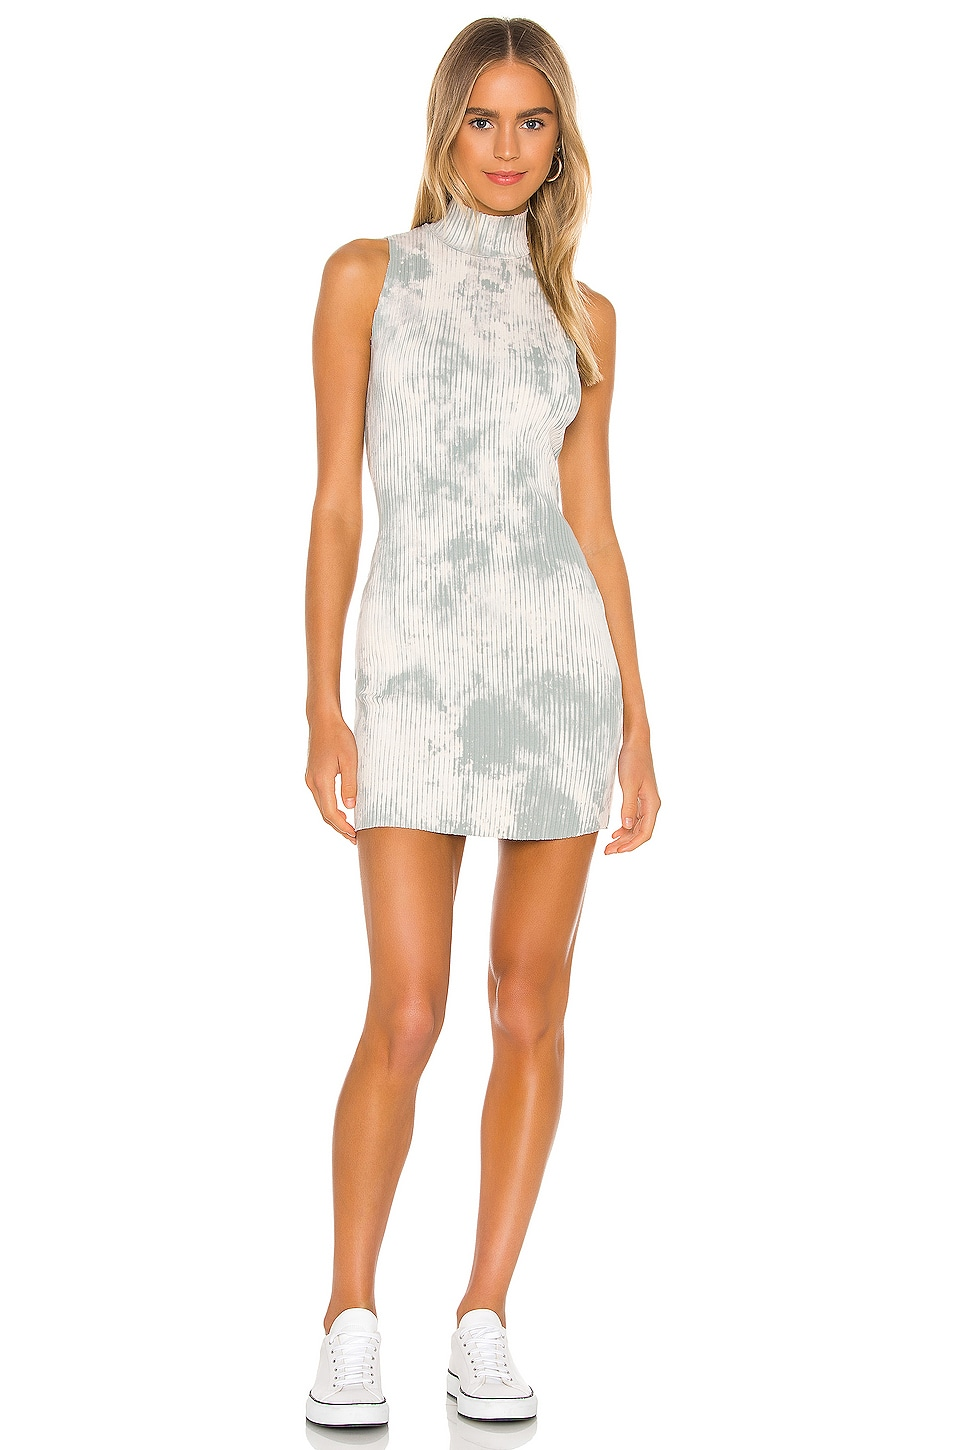 x REVOLVE Ibiza Racerback Dress XO             COTTON CITIZEN                                                                                                       CA$ 224.67 11